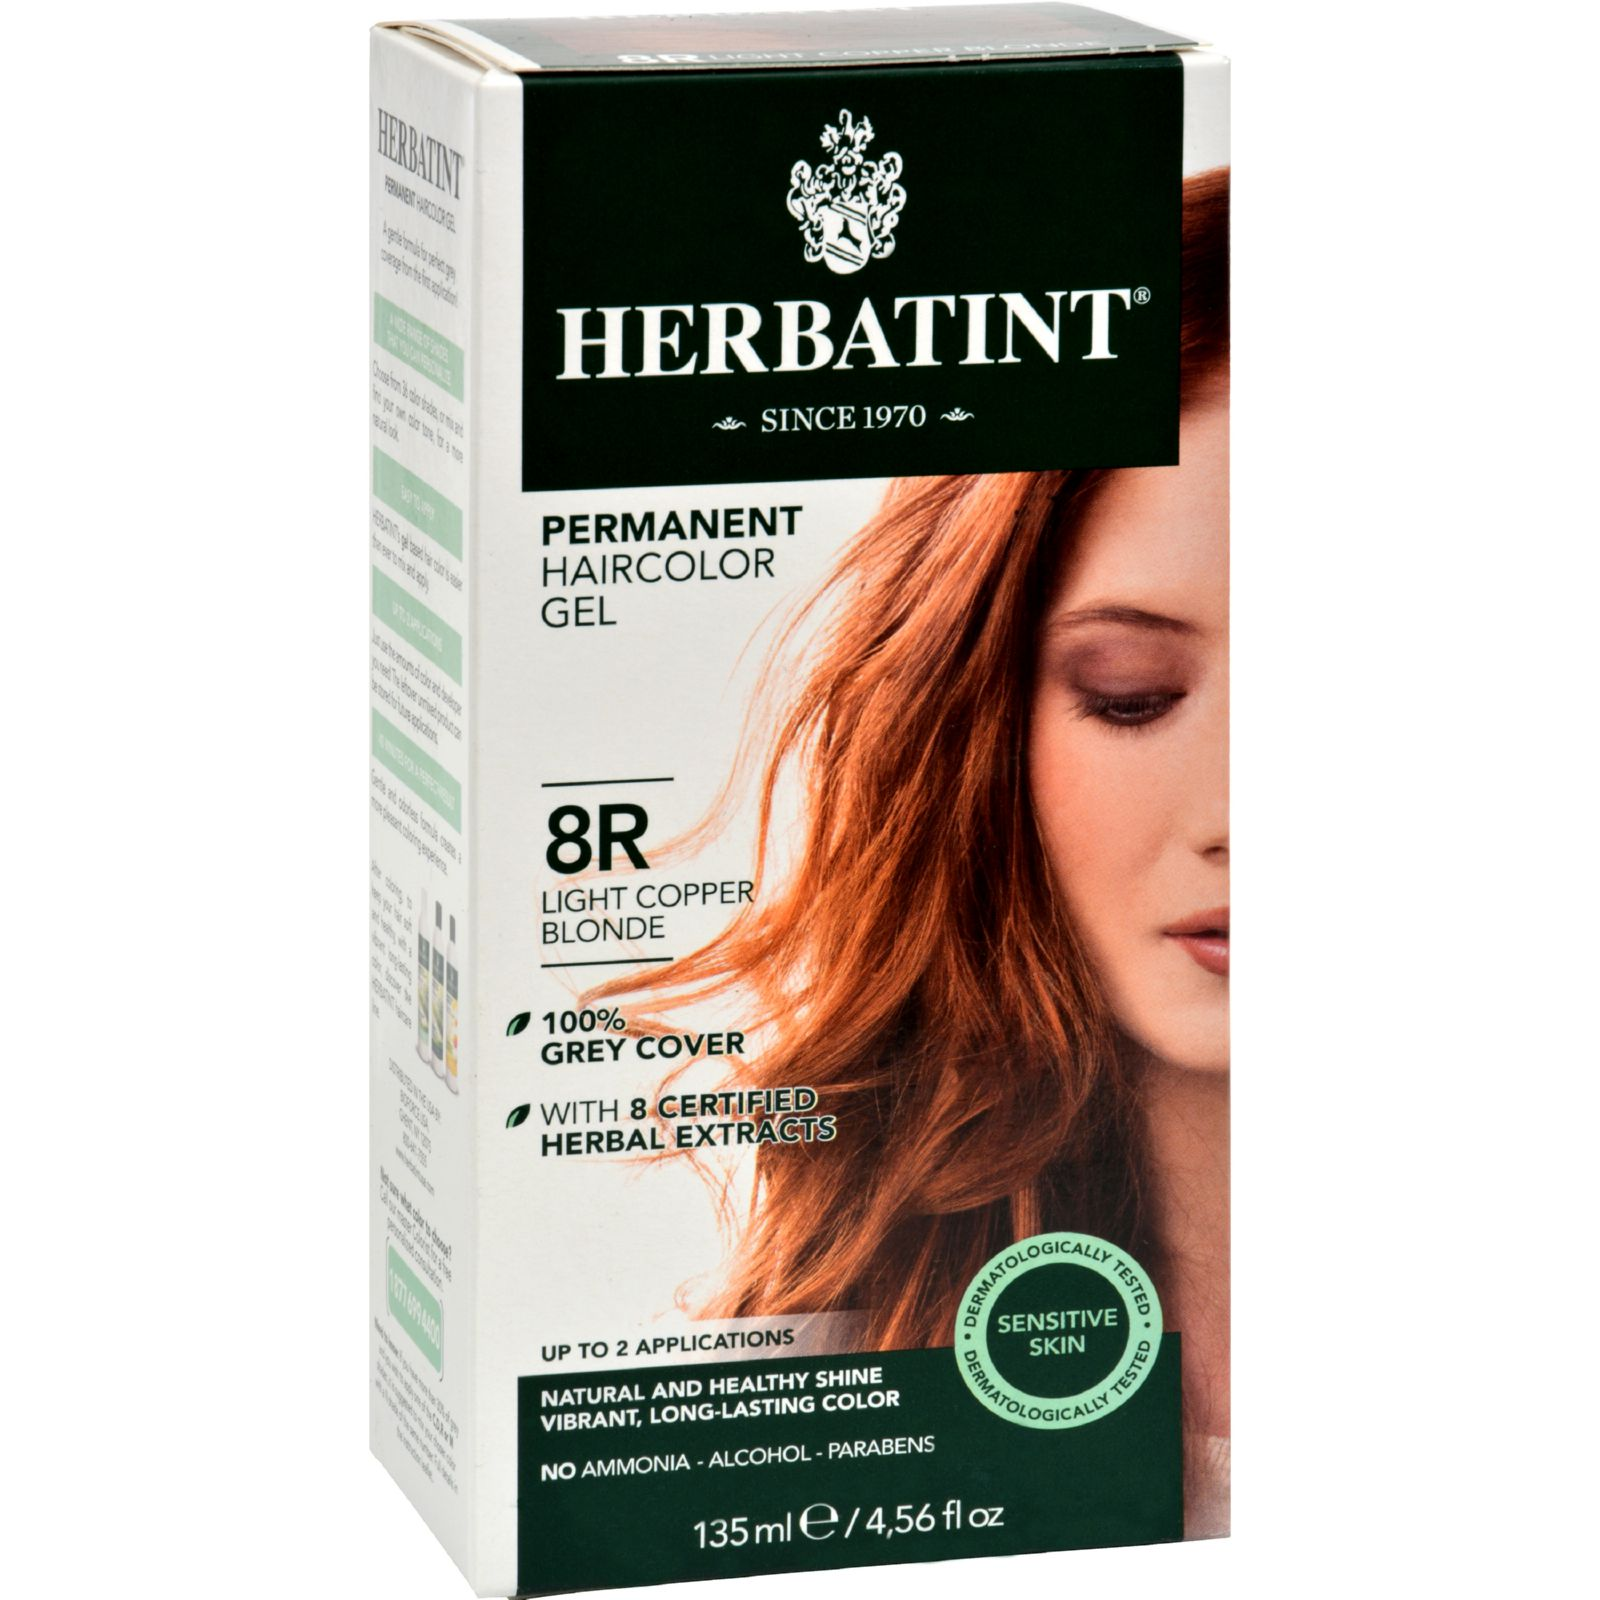 Herbatint 8R Light Copper Blonde, 4 Oz